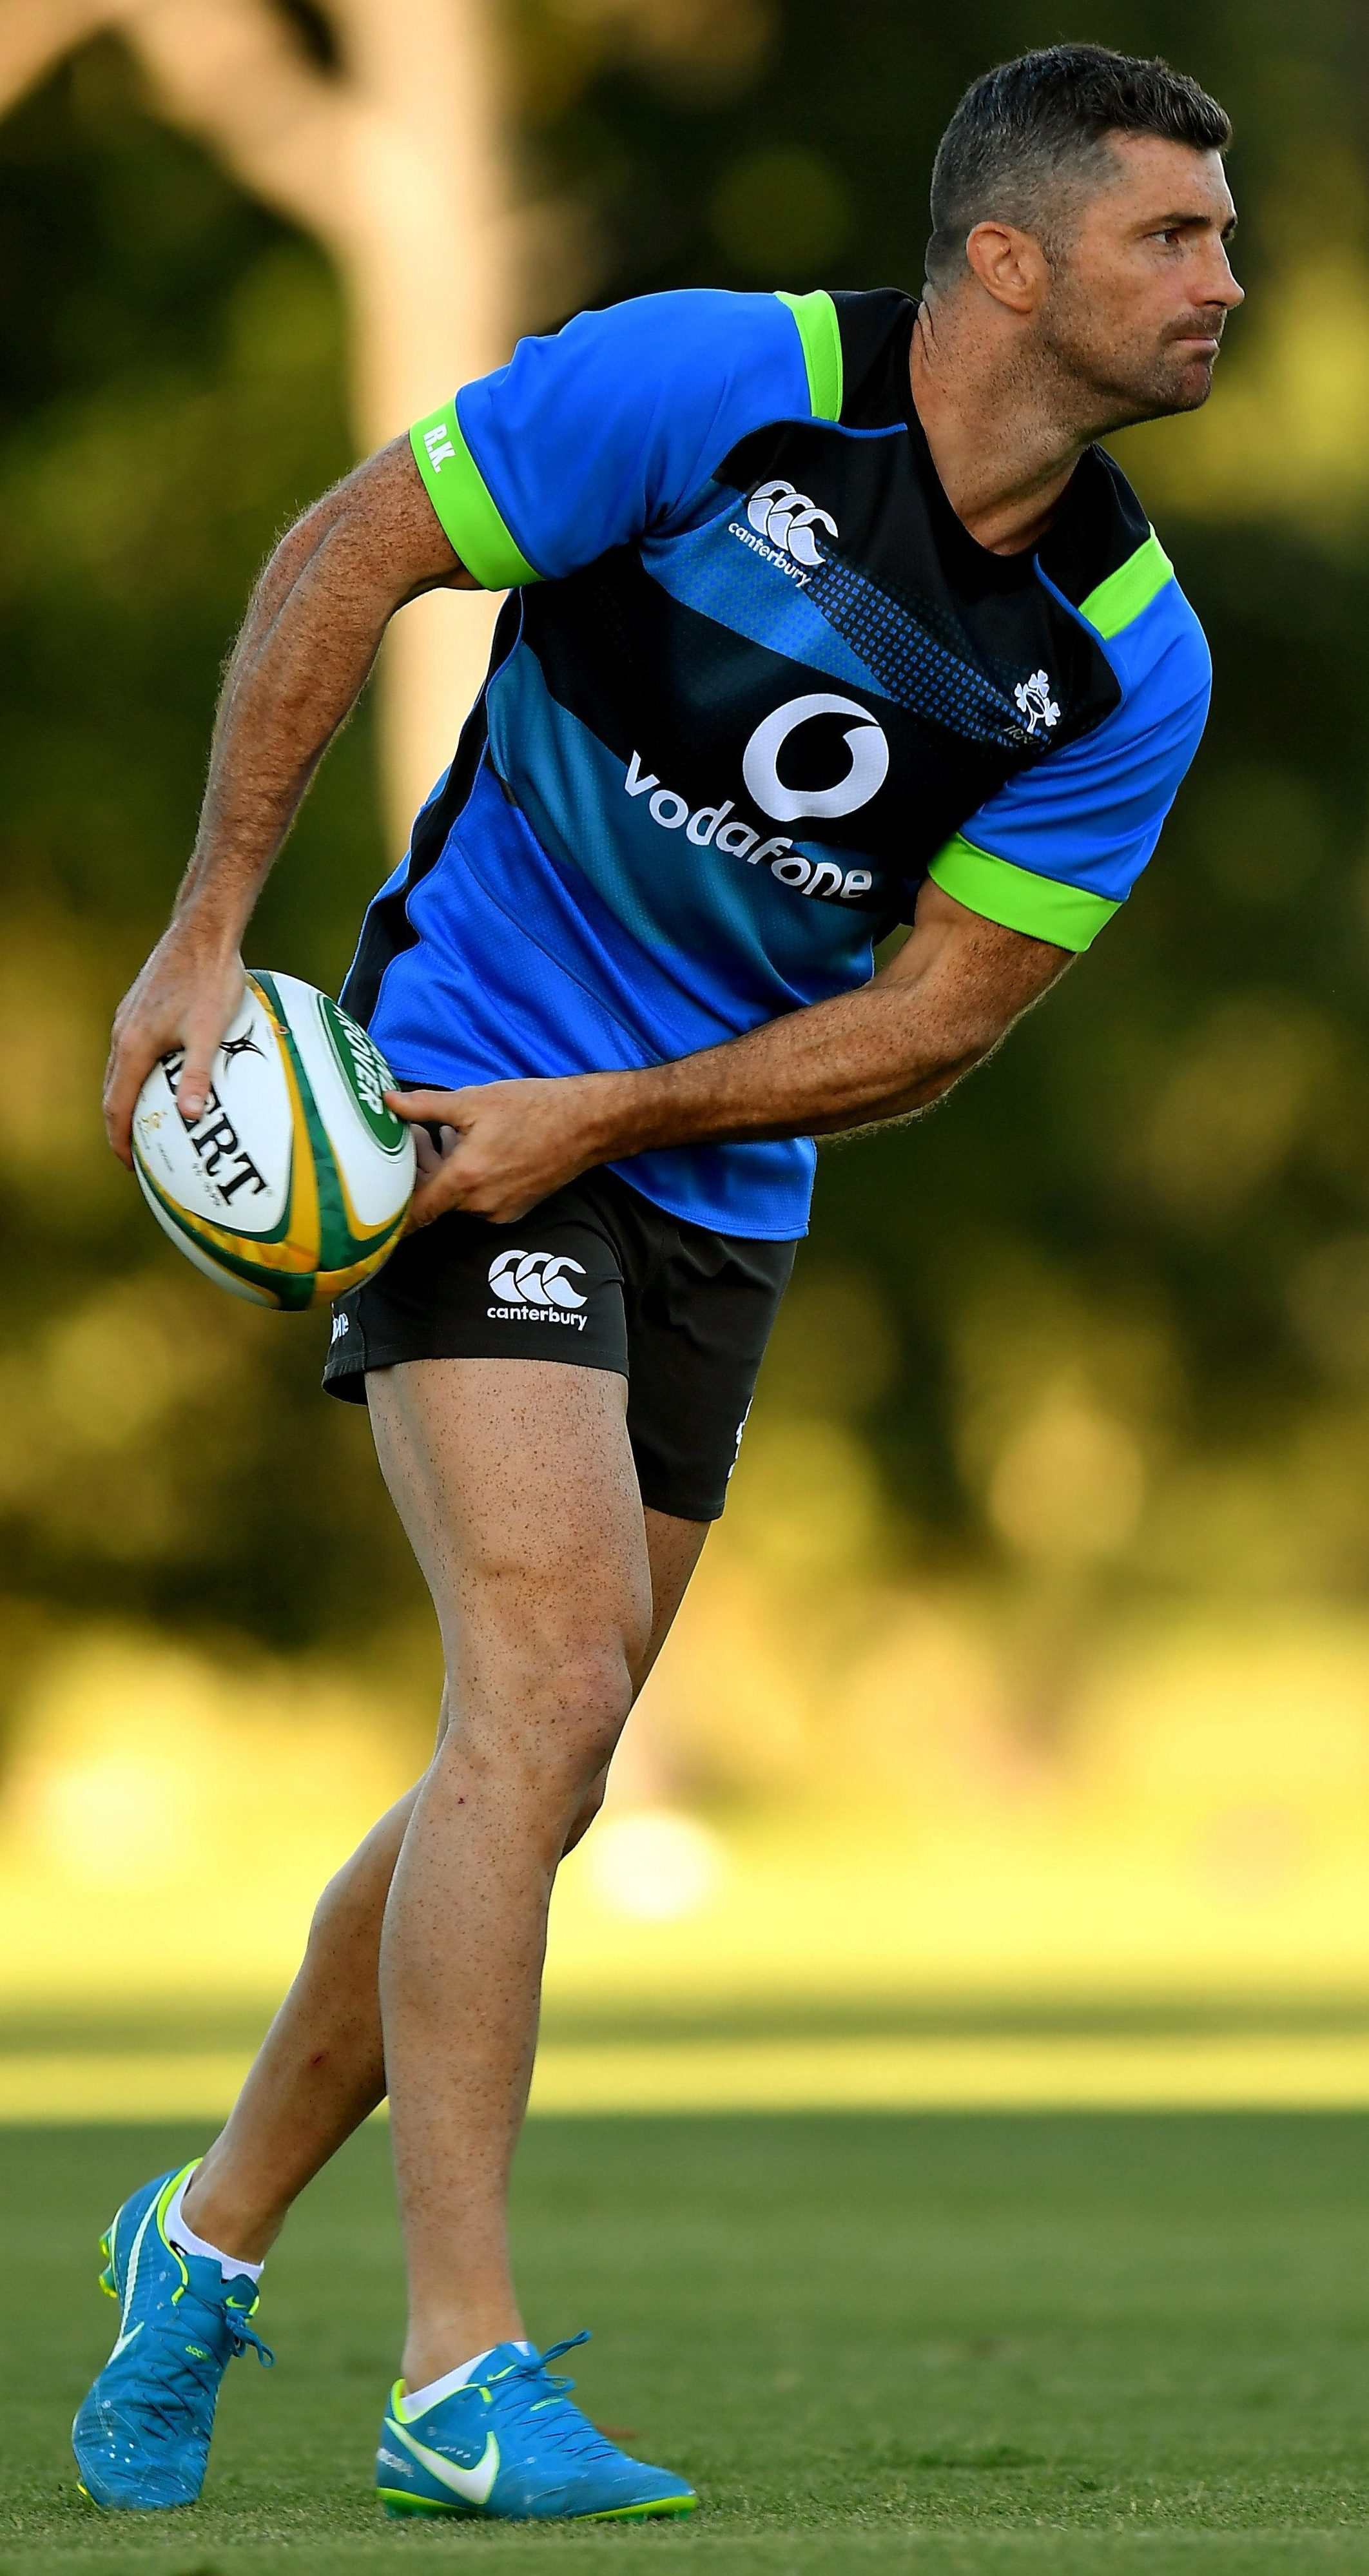 Rob Kearney gets in a practise throw or two